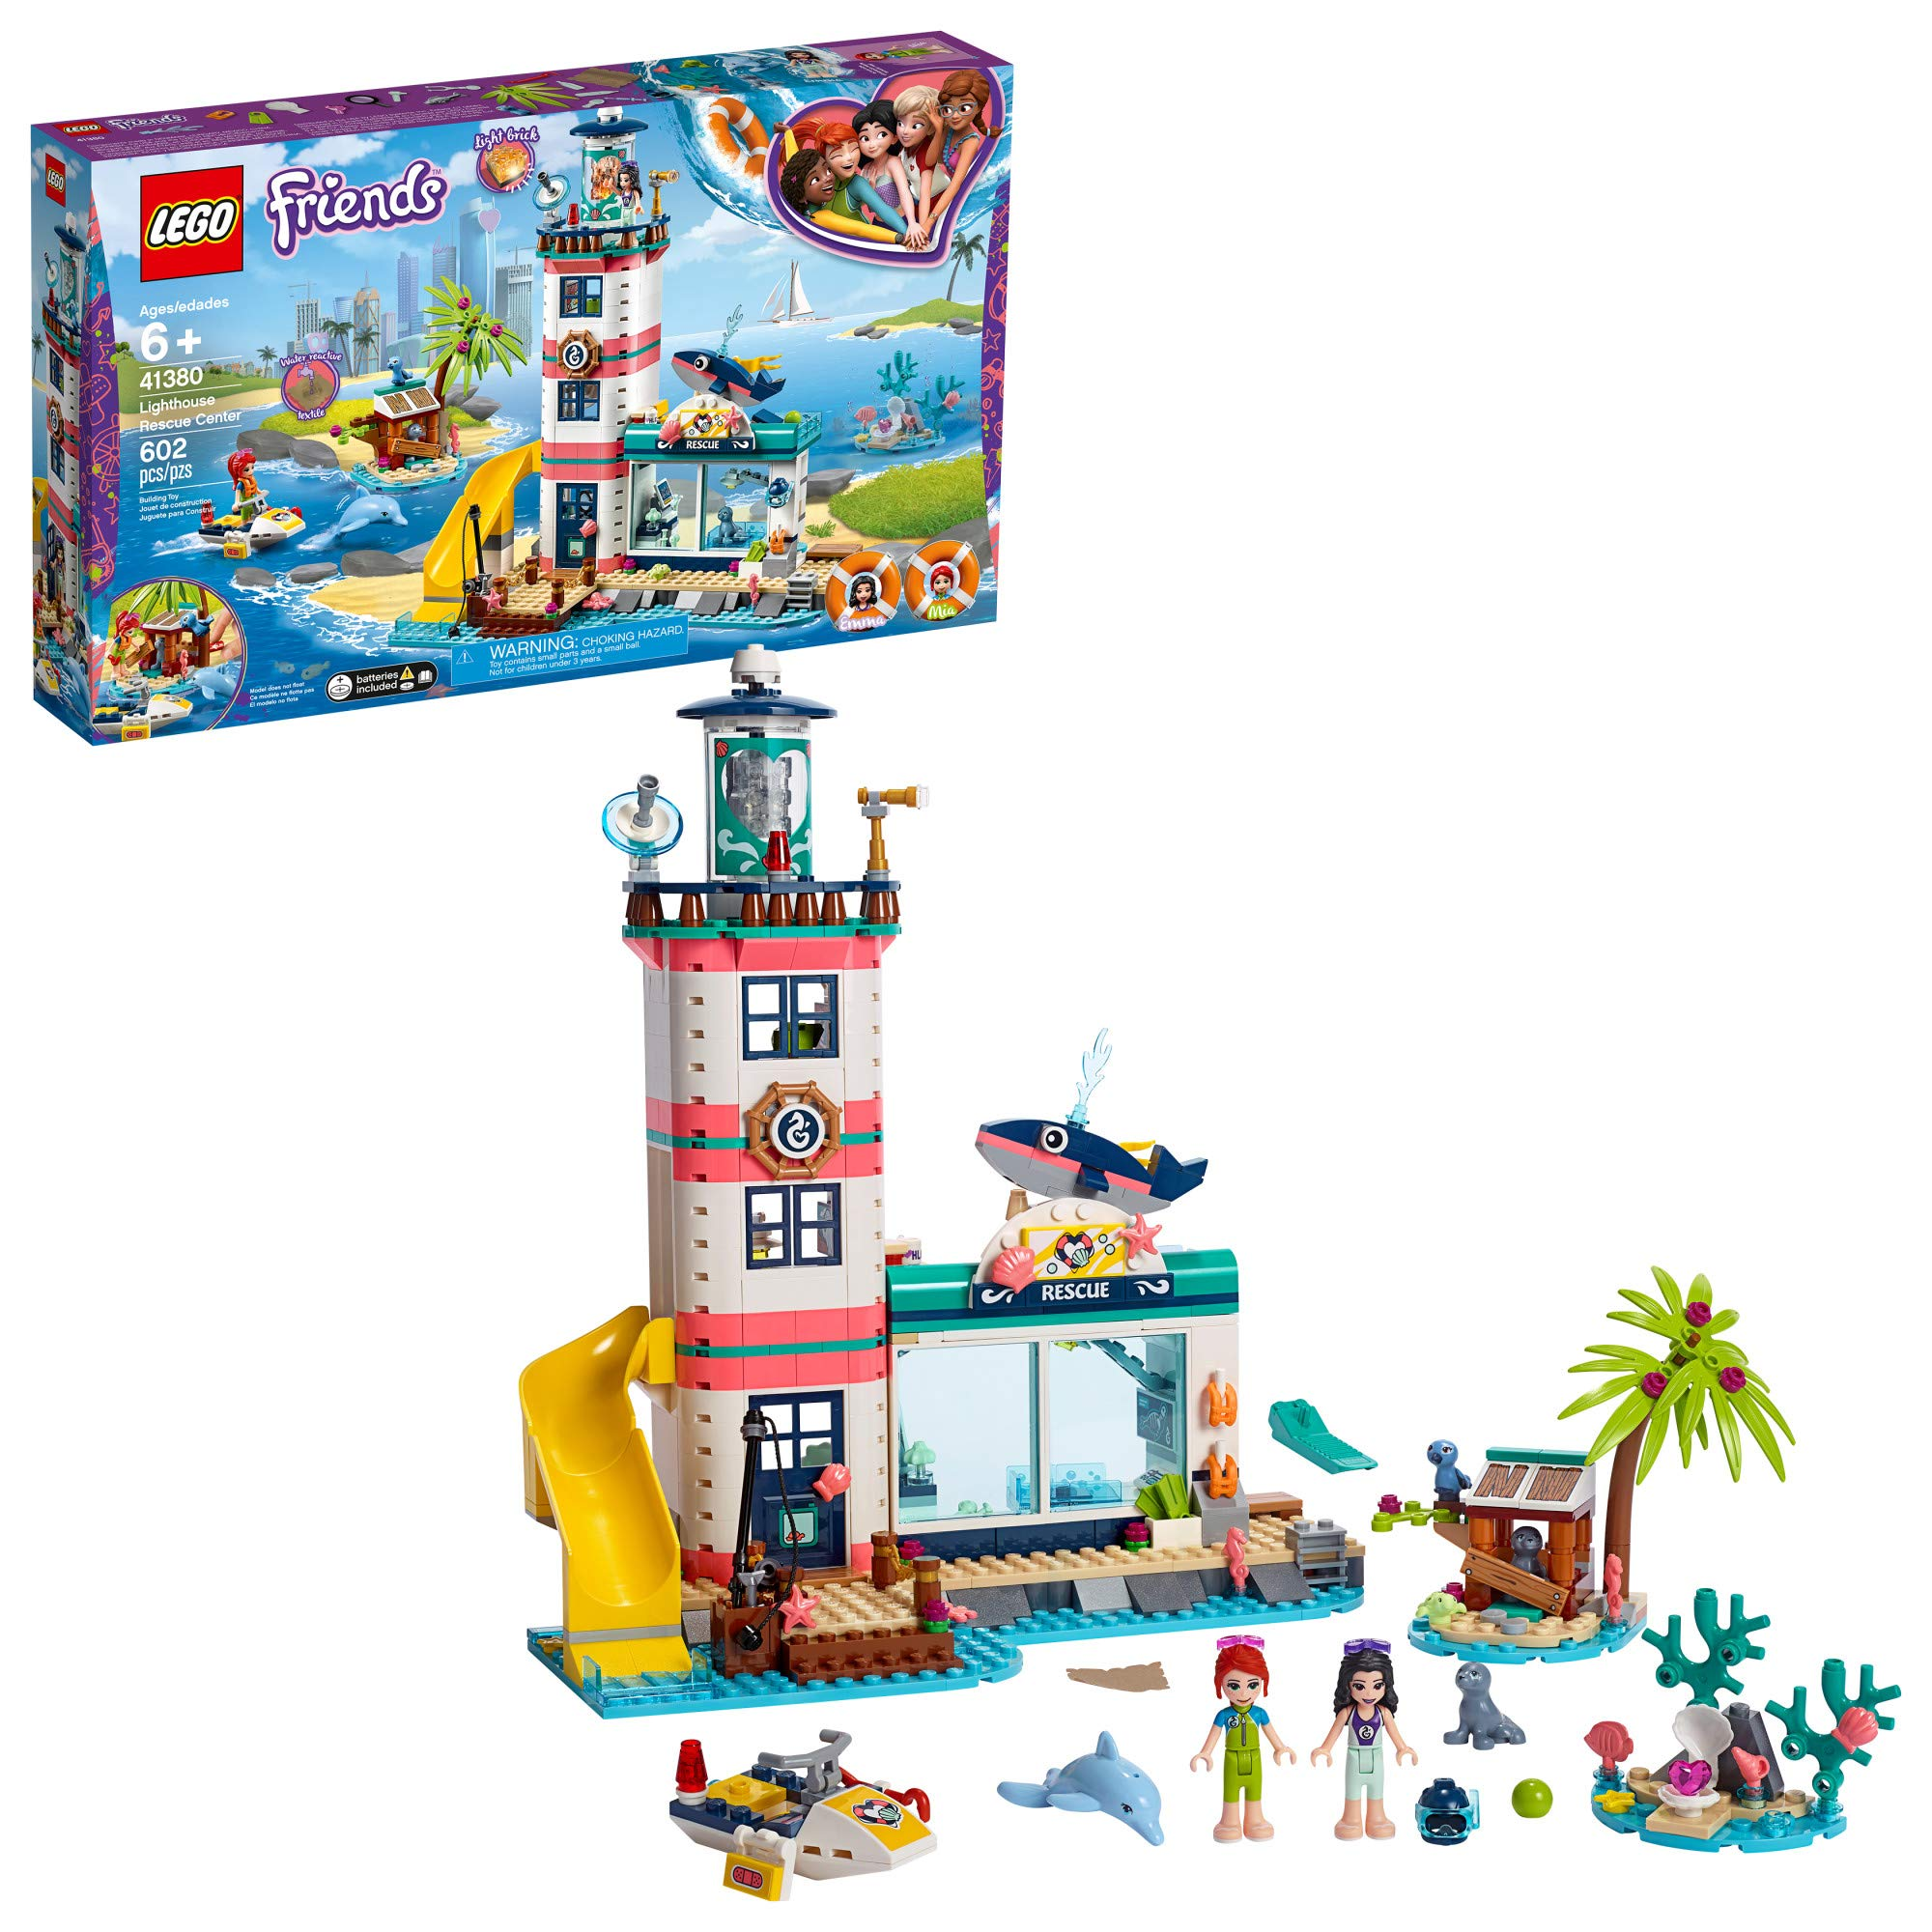 Kit de construcción LEGO Friends Lighthouse Rescue Center 41380 (602 piezas)